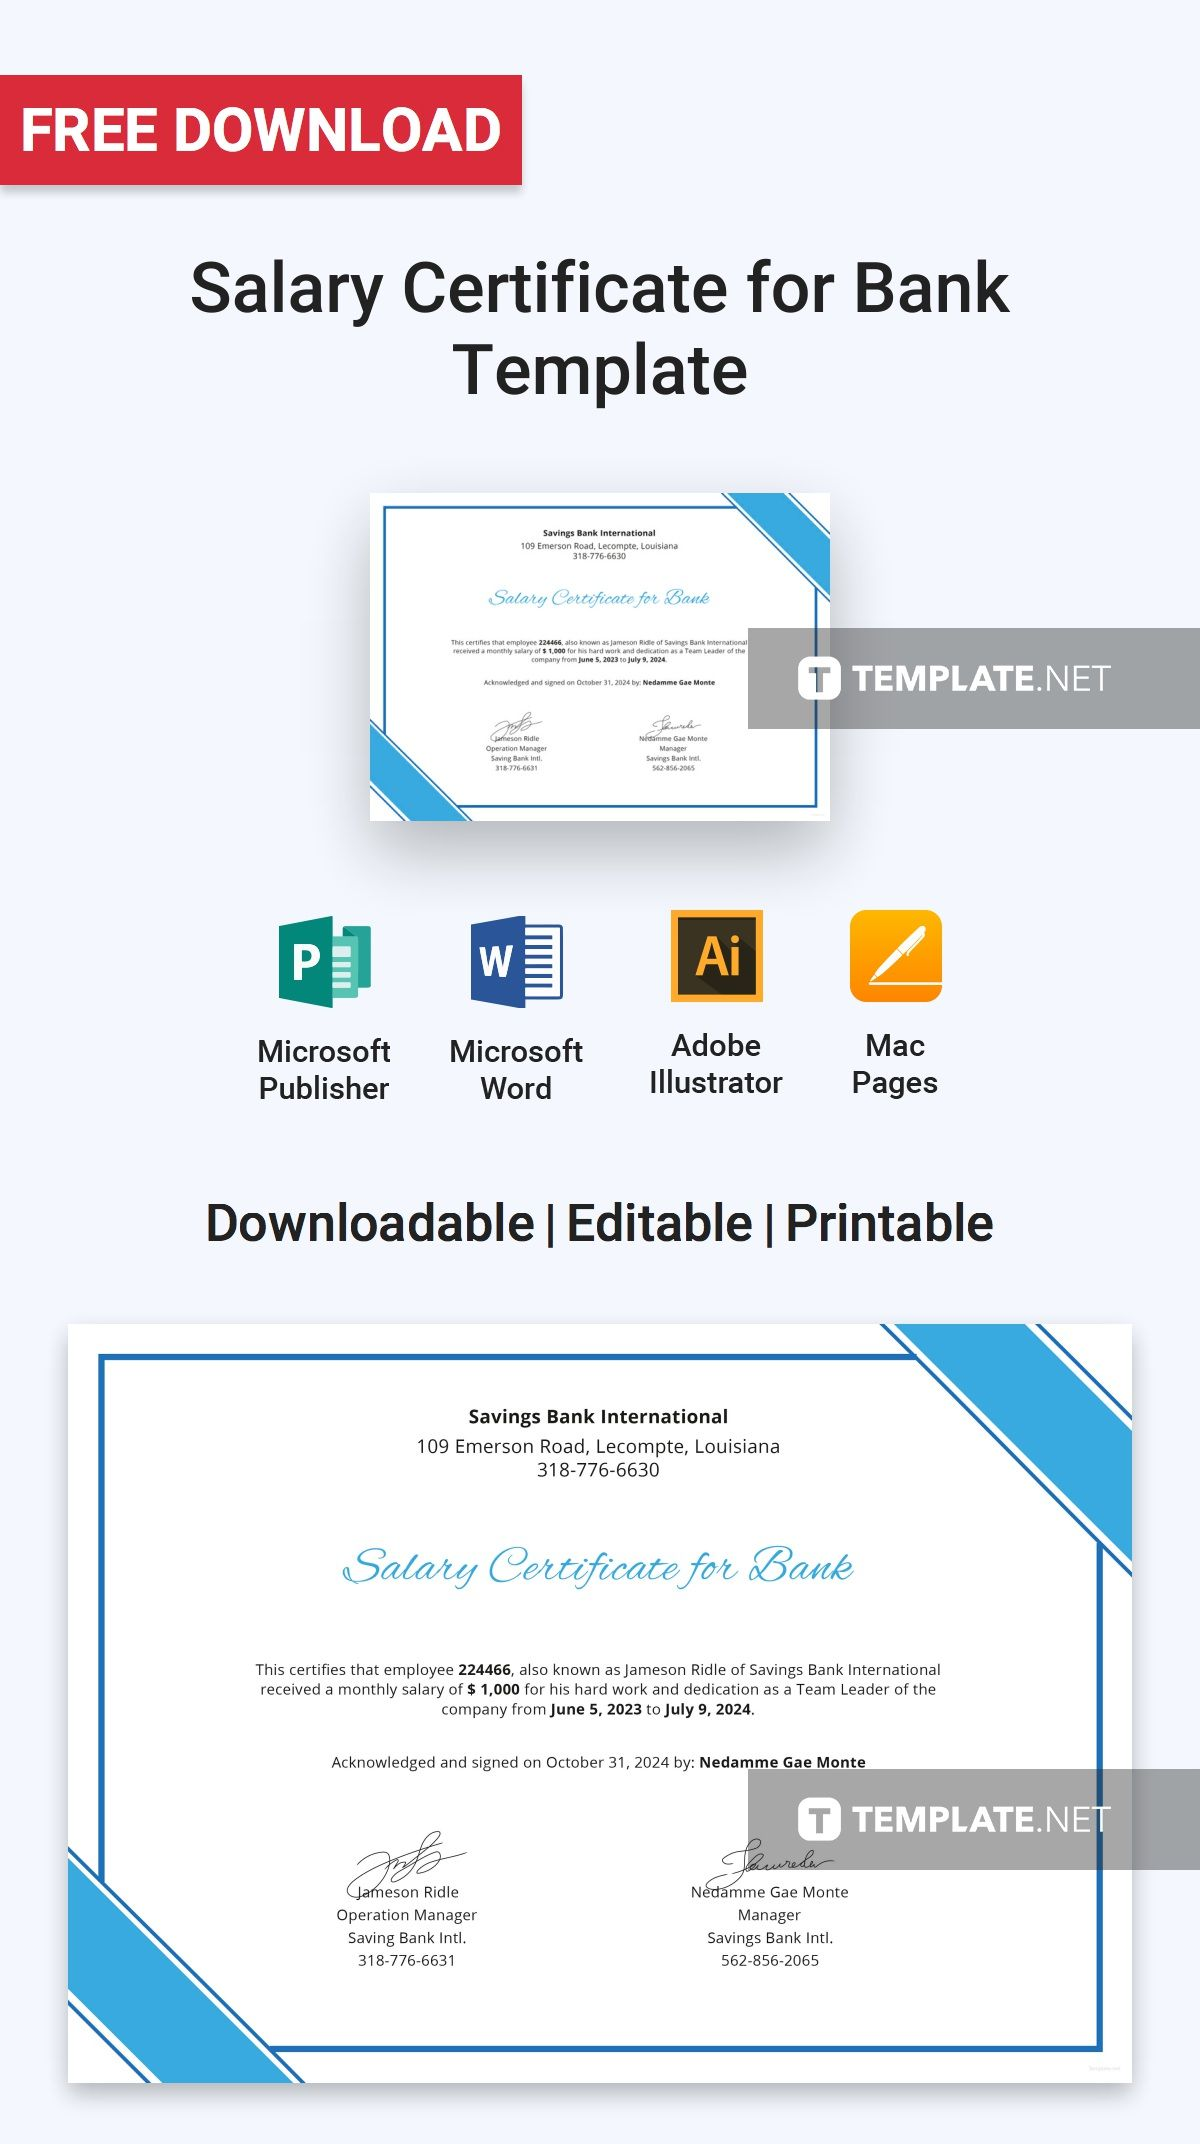 Free Salary Certificate for Bank Certificate Templates